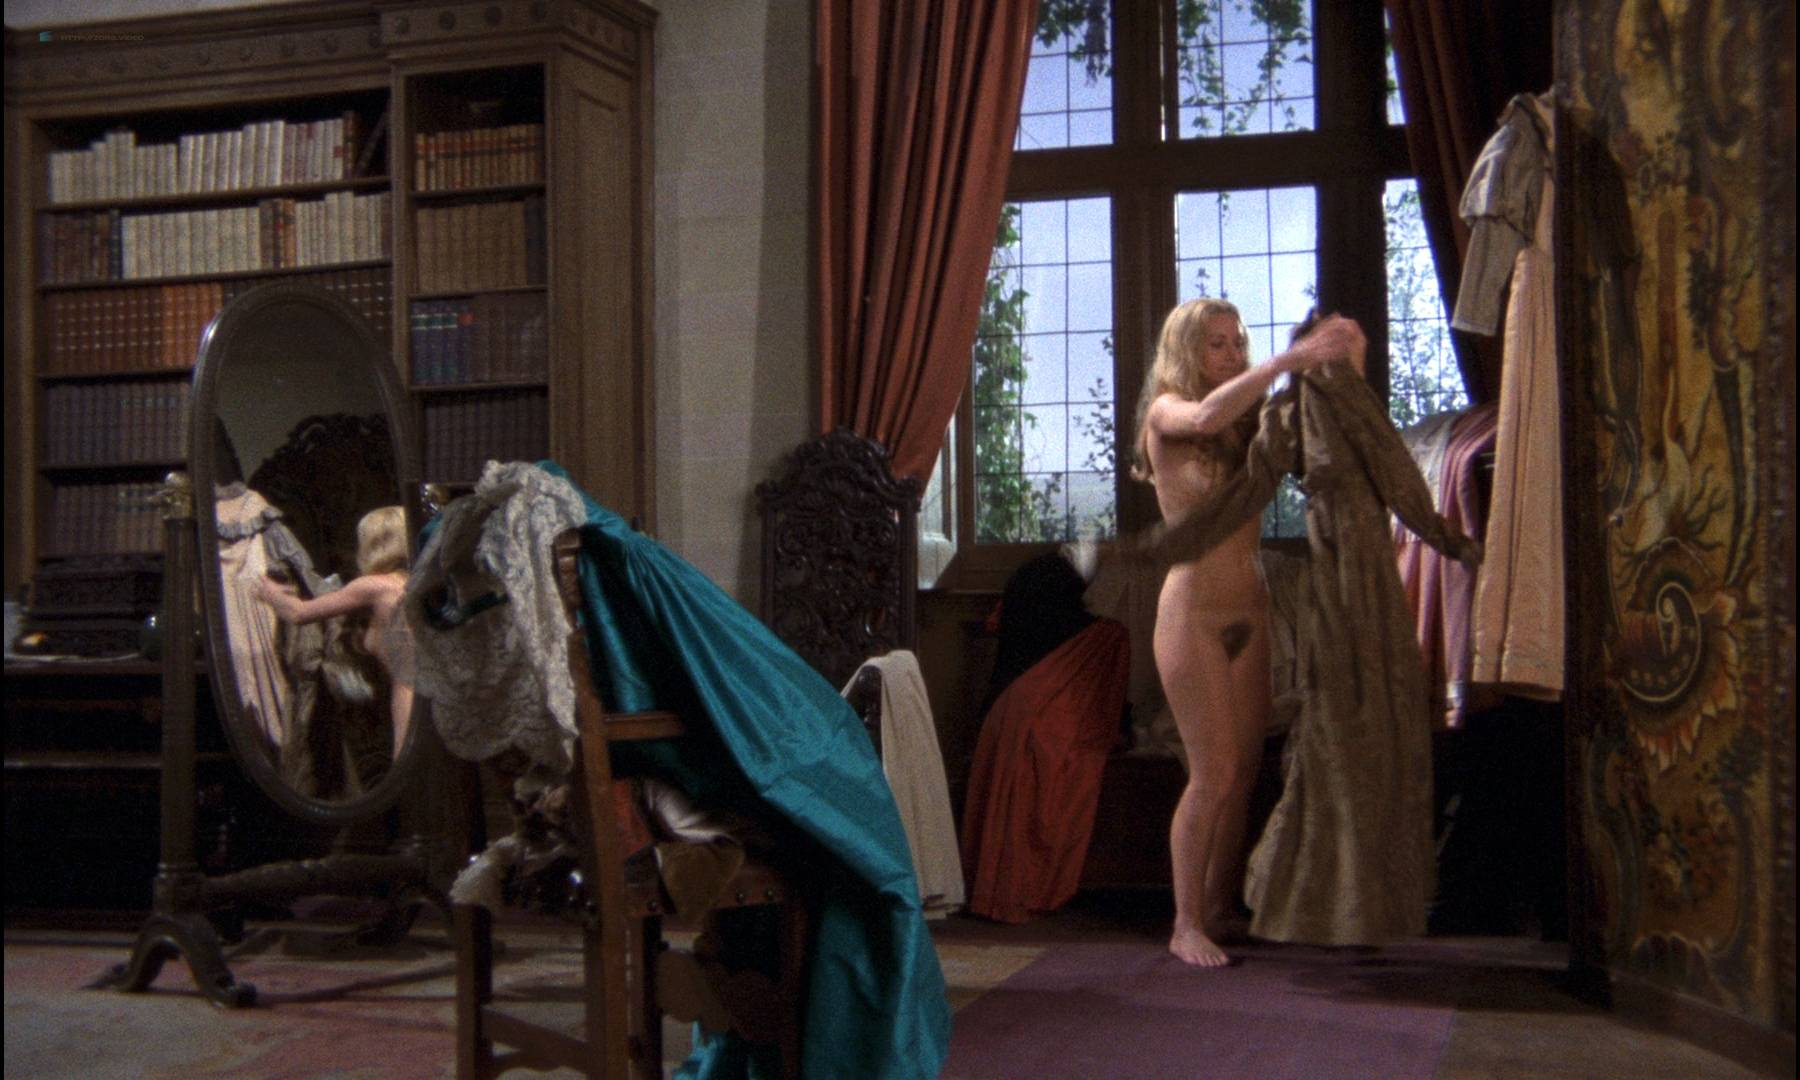 Gillian Hills nude topless Virginia Wetherell nude full frontal - Demons of the Mind (UK-1972) HD 1080p BluRay (5)